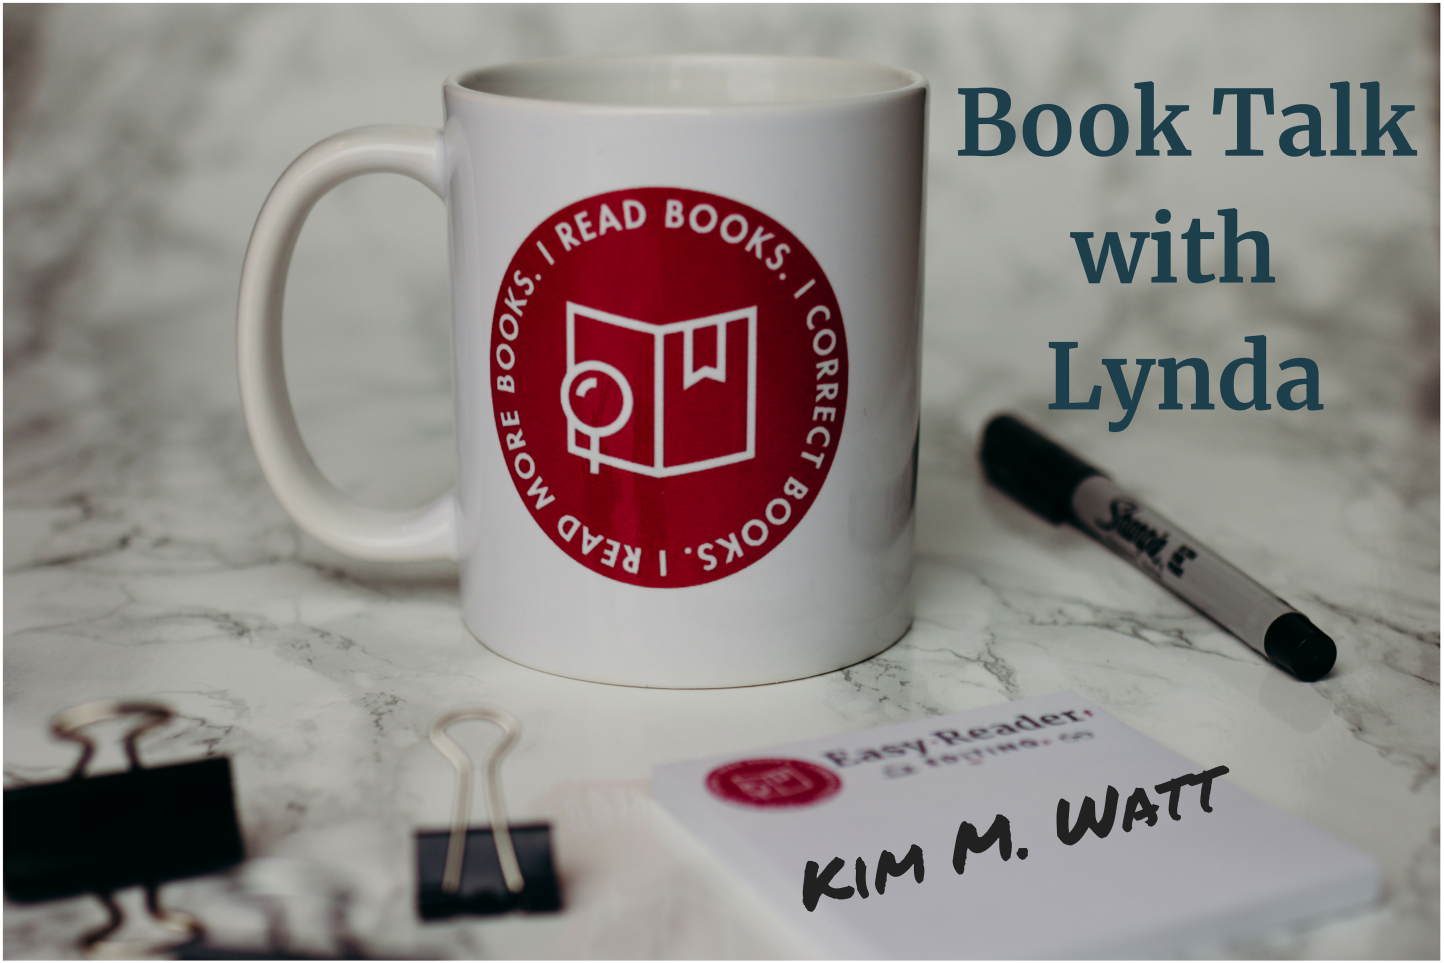 Book Talk with Lynda-author Kim Watt-Easy Reader Editing mug with pens and Post-it notes